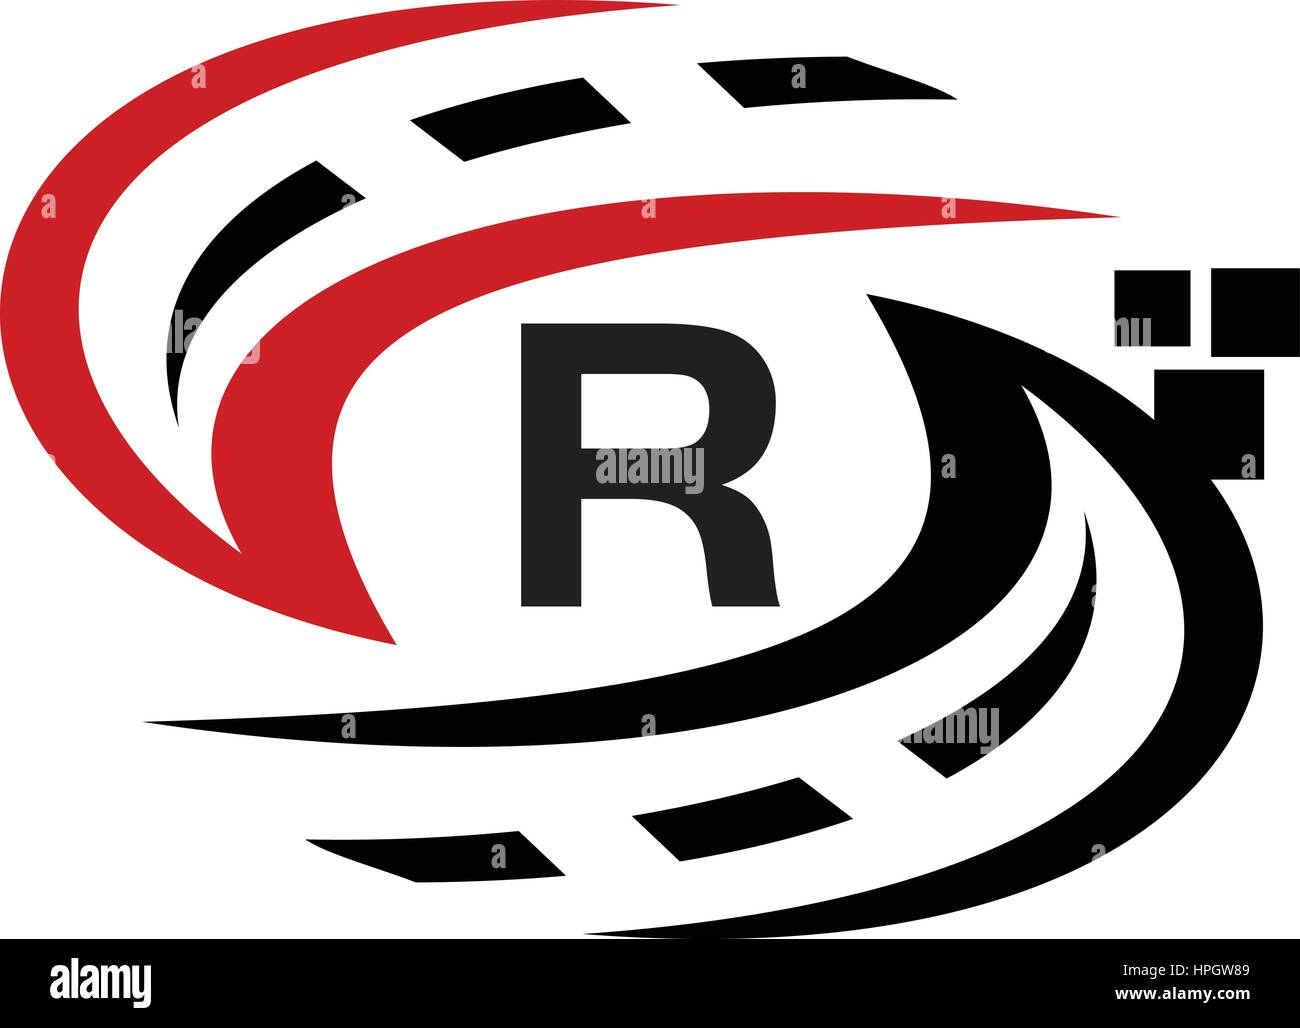 Applications Solutions Synergy Comprehensive Initial R Stock Vector